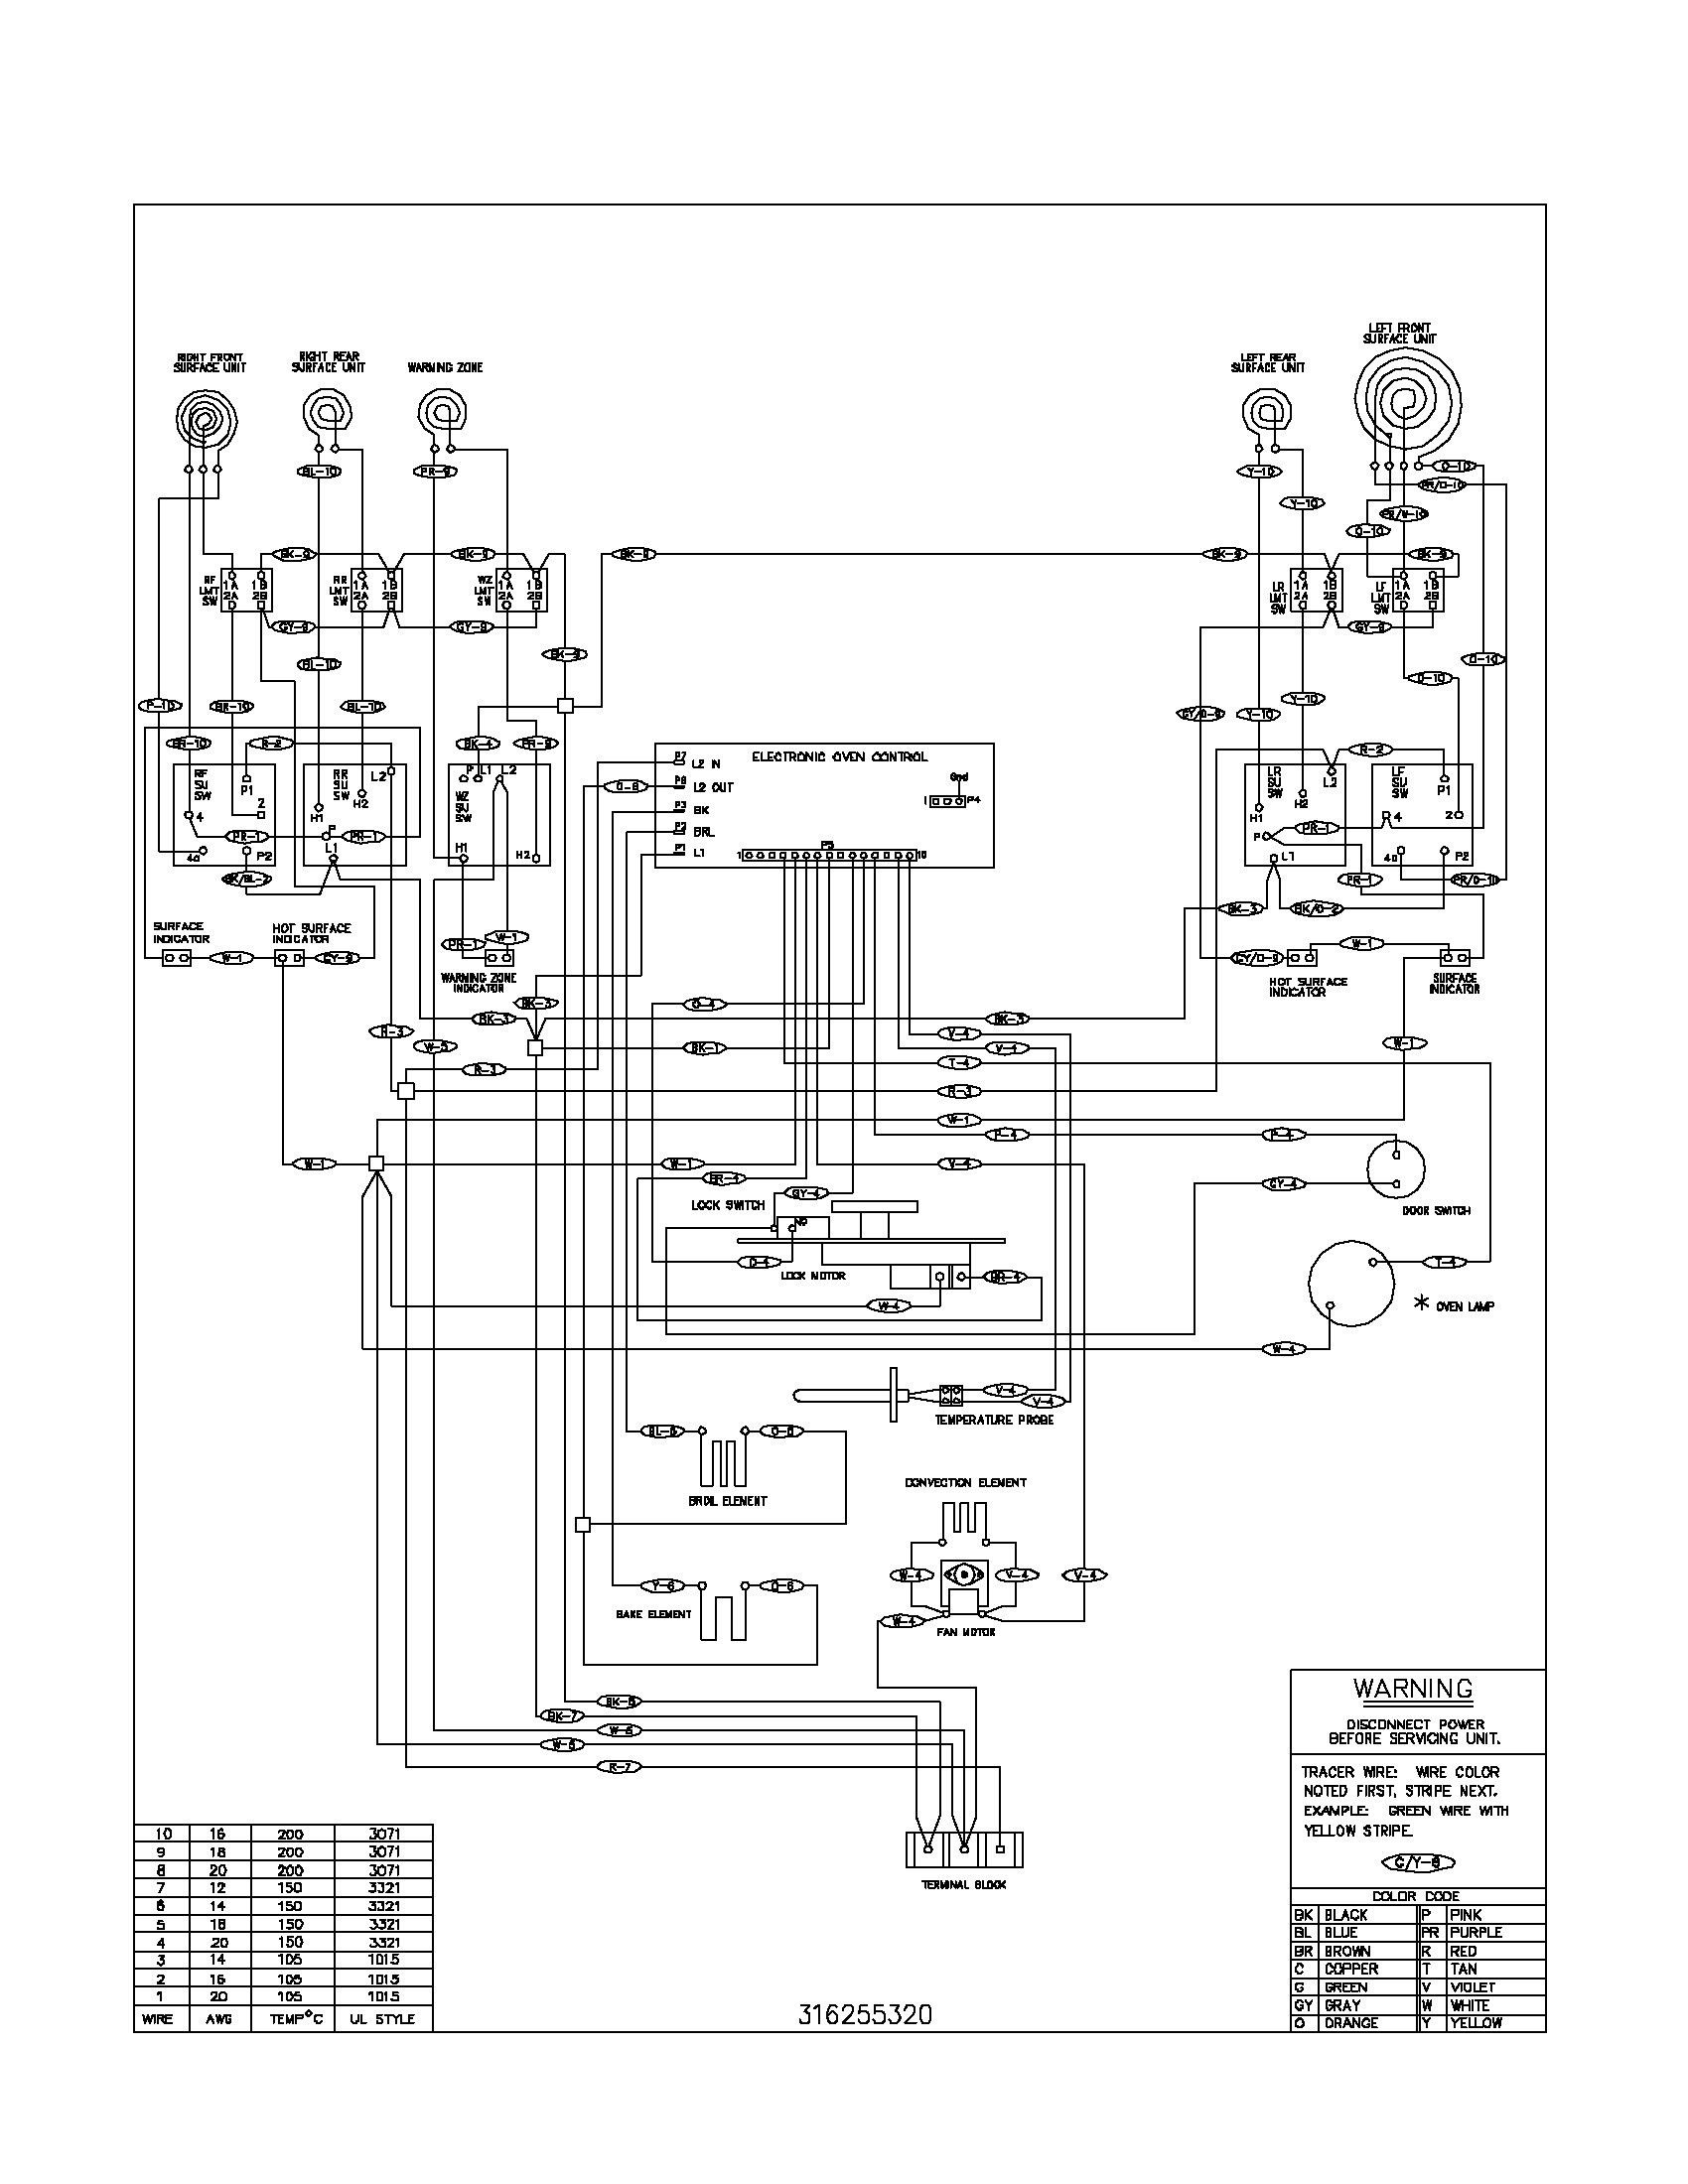 24 Wiring Diagram For Electric Stove - bookingritzcarlton.info | Electric  stove, Electrical diagram, Electric ovenPinterest